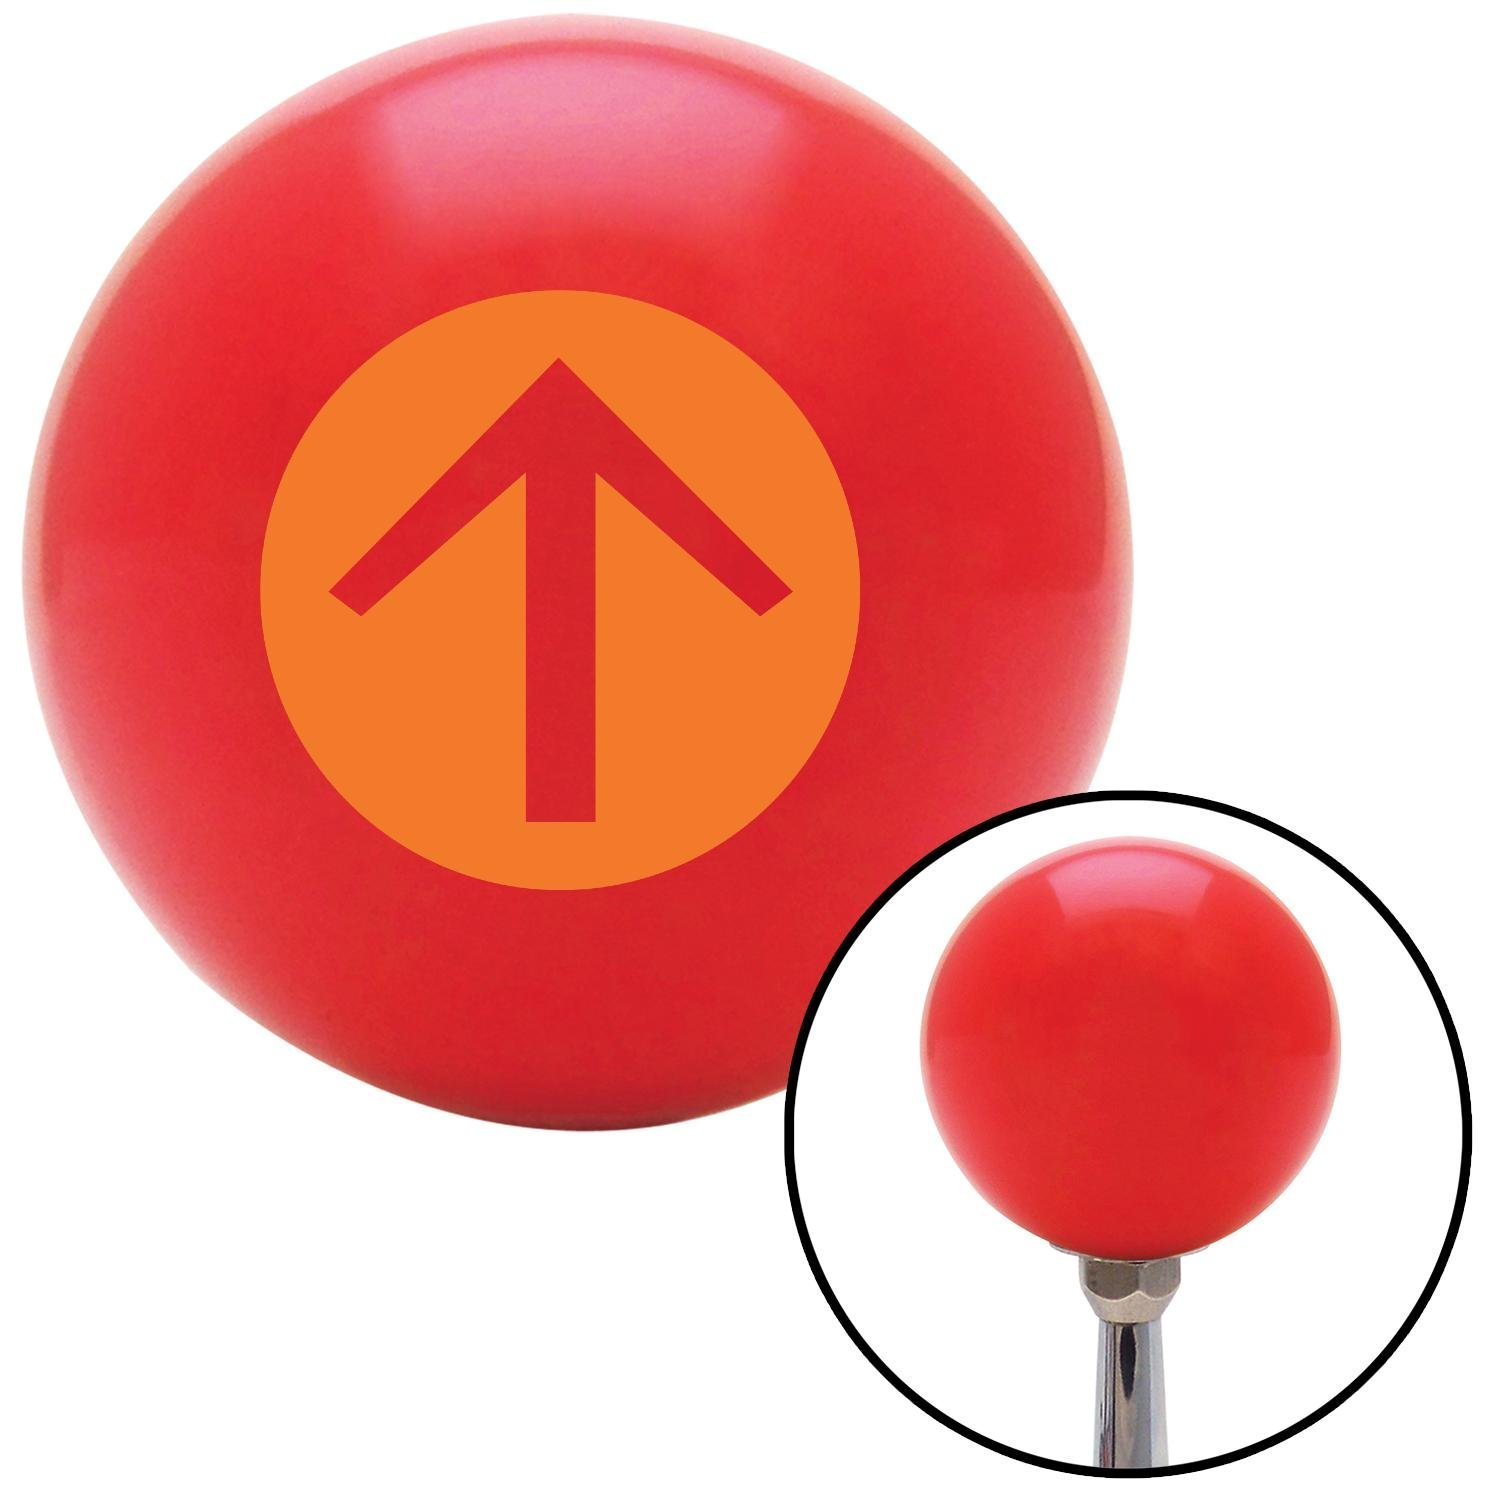 American Shifter 94090 Red Shift Knob with M16 x 1.5 Insert Orange Circle Directional Arrow Up